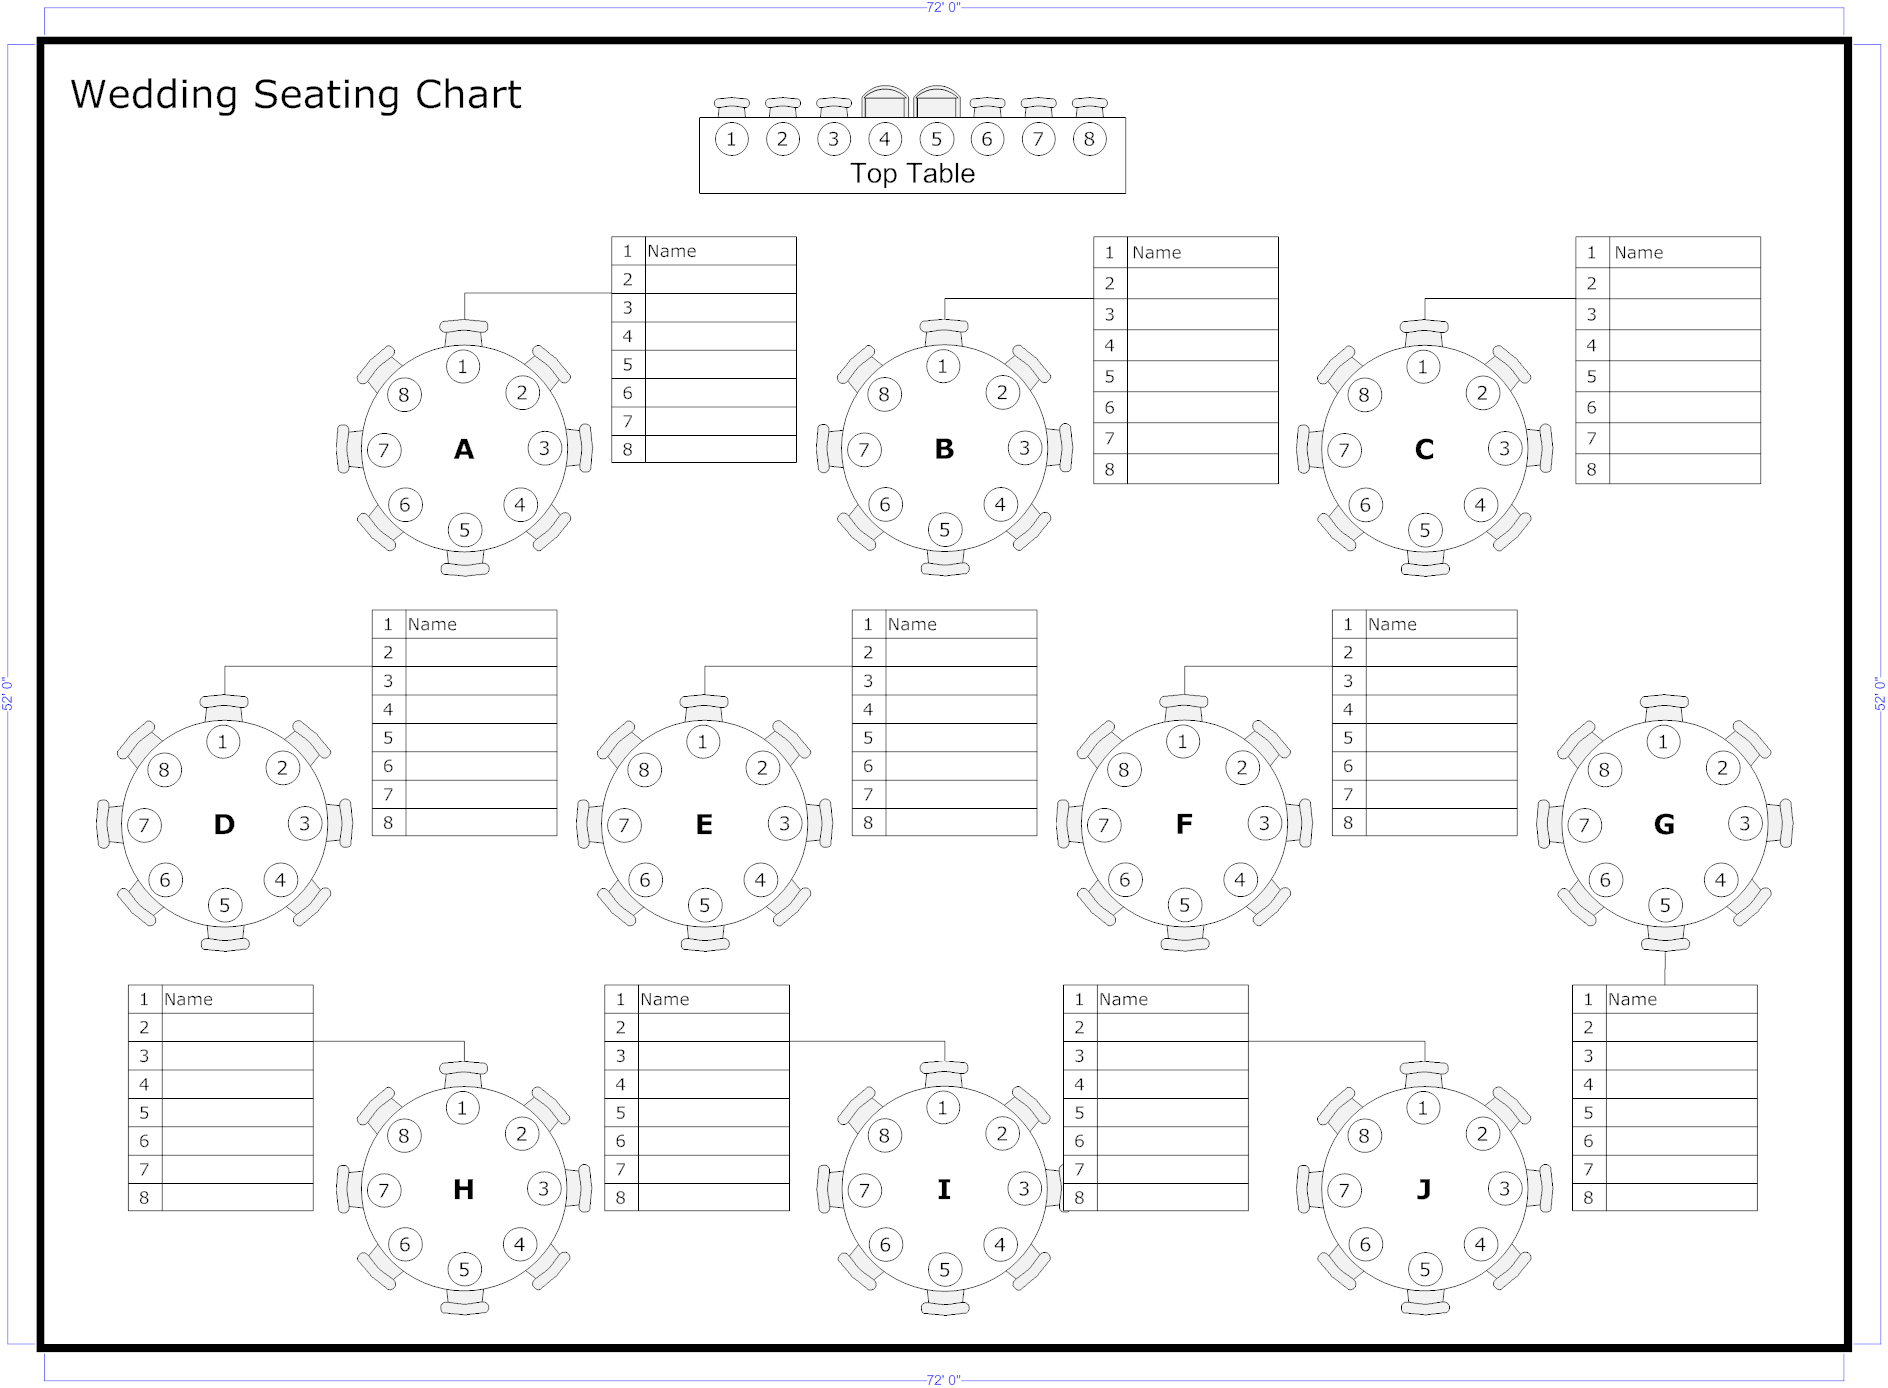 Tips To Seat Your Wedding Guests   Wedding Ideas   Seating Chart - Free Printable Wedding Seating Chart Template